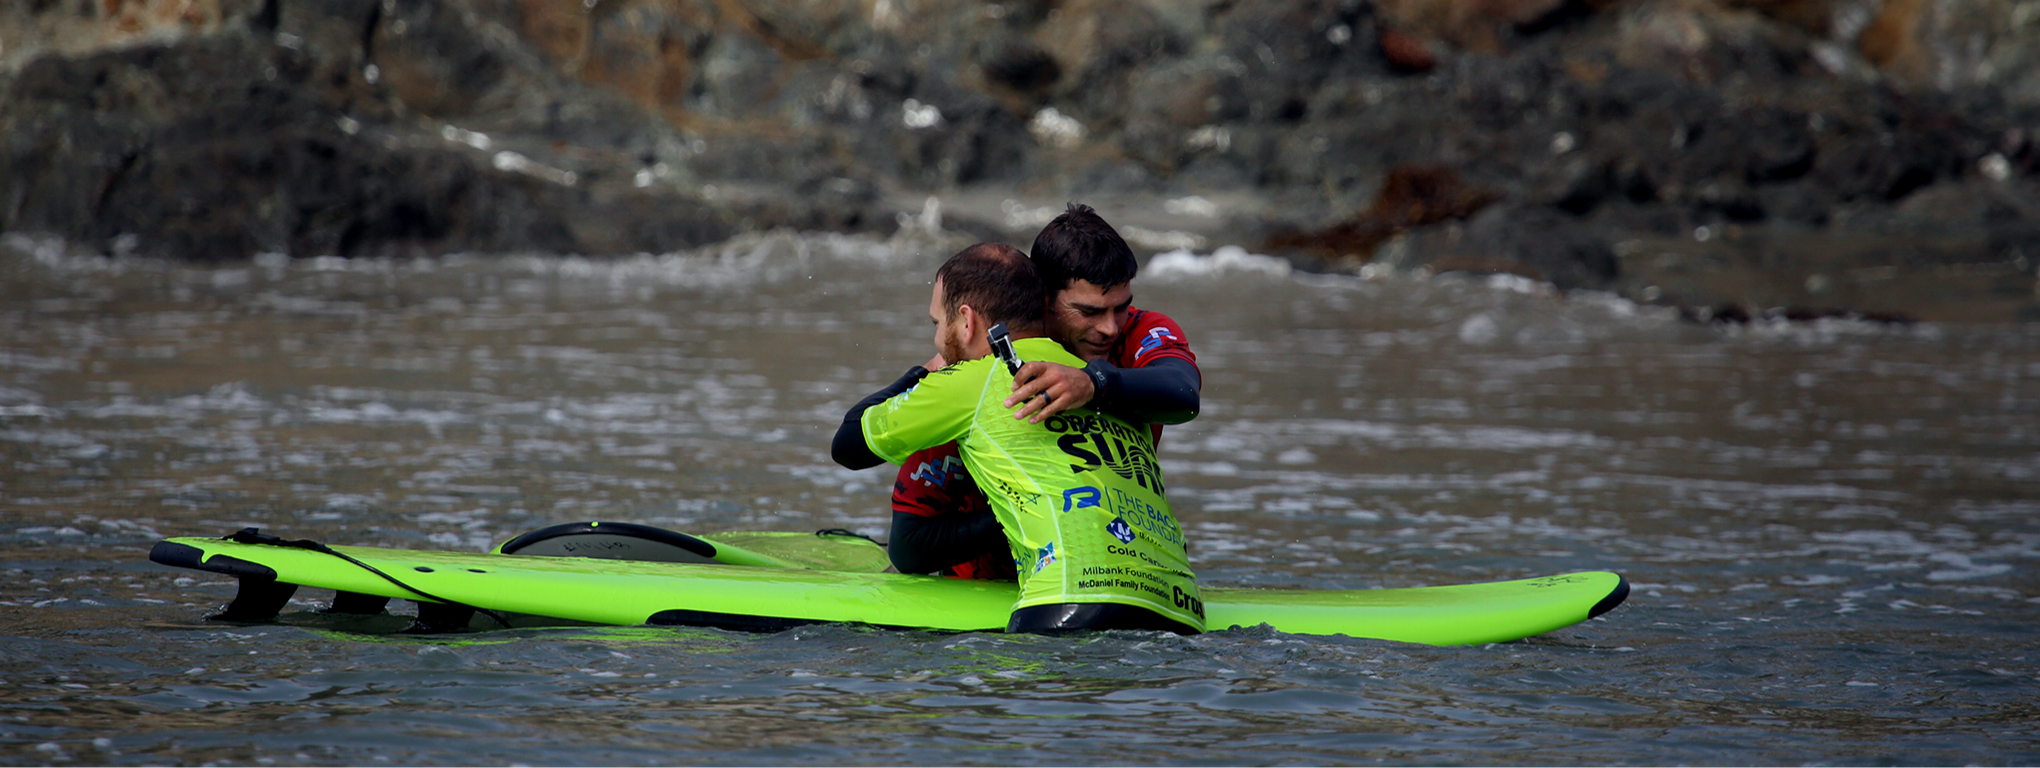 A participant and instructor hug